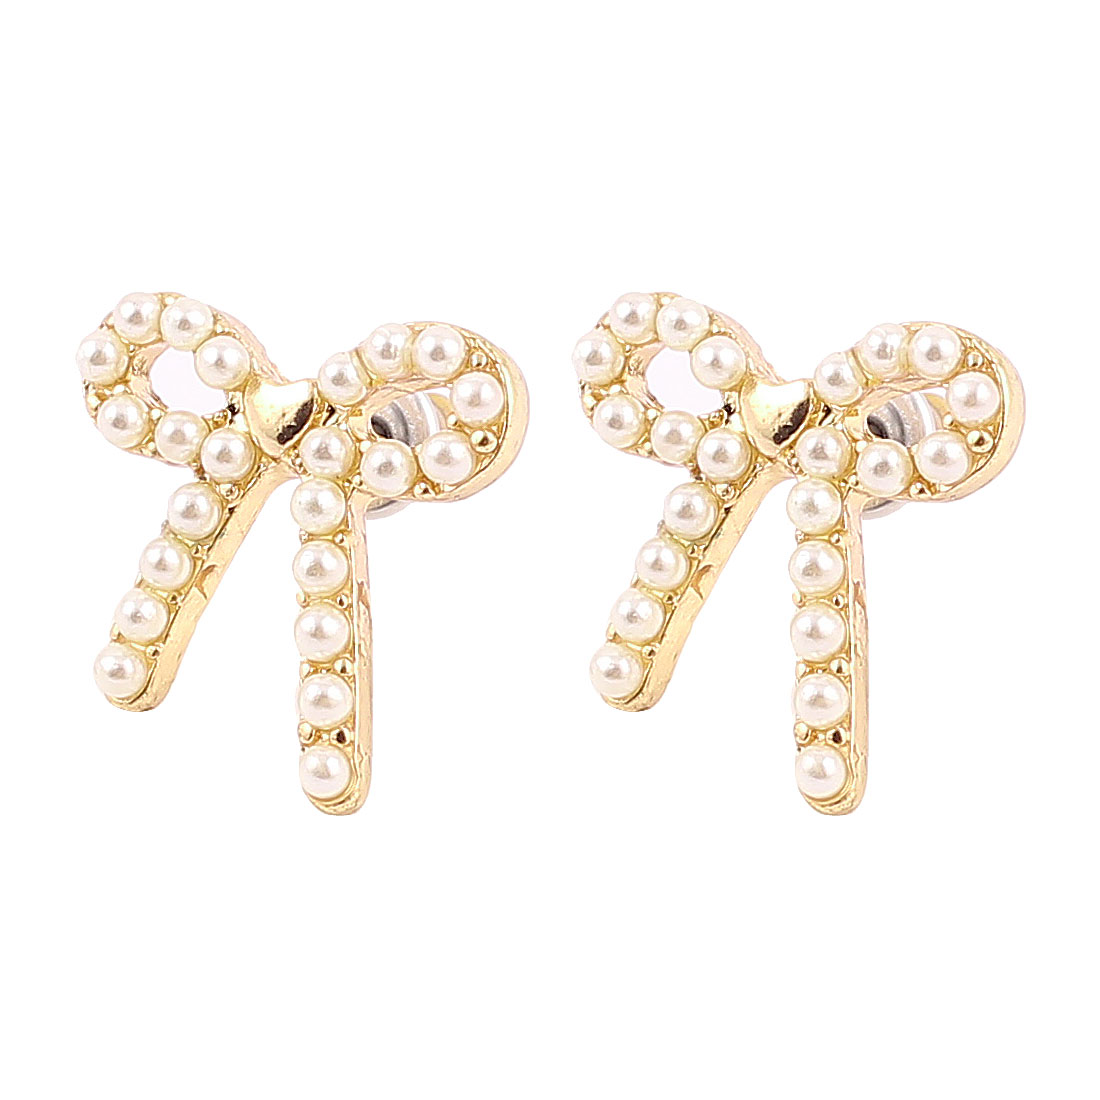 1.5cm Length Gold Tone White Plastic Artificial Beads Decor Bowknot Shape Metal Pierced Stud Pin Ear Nail Earrings Earbobs for Lady Women